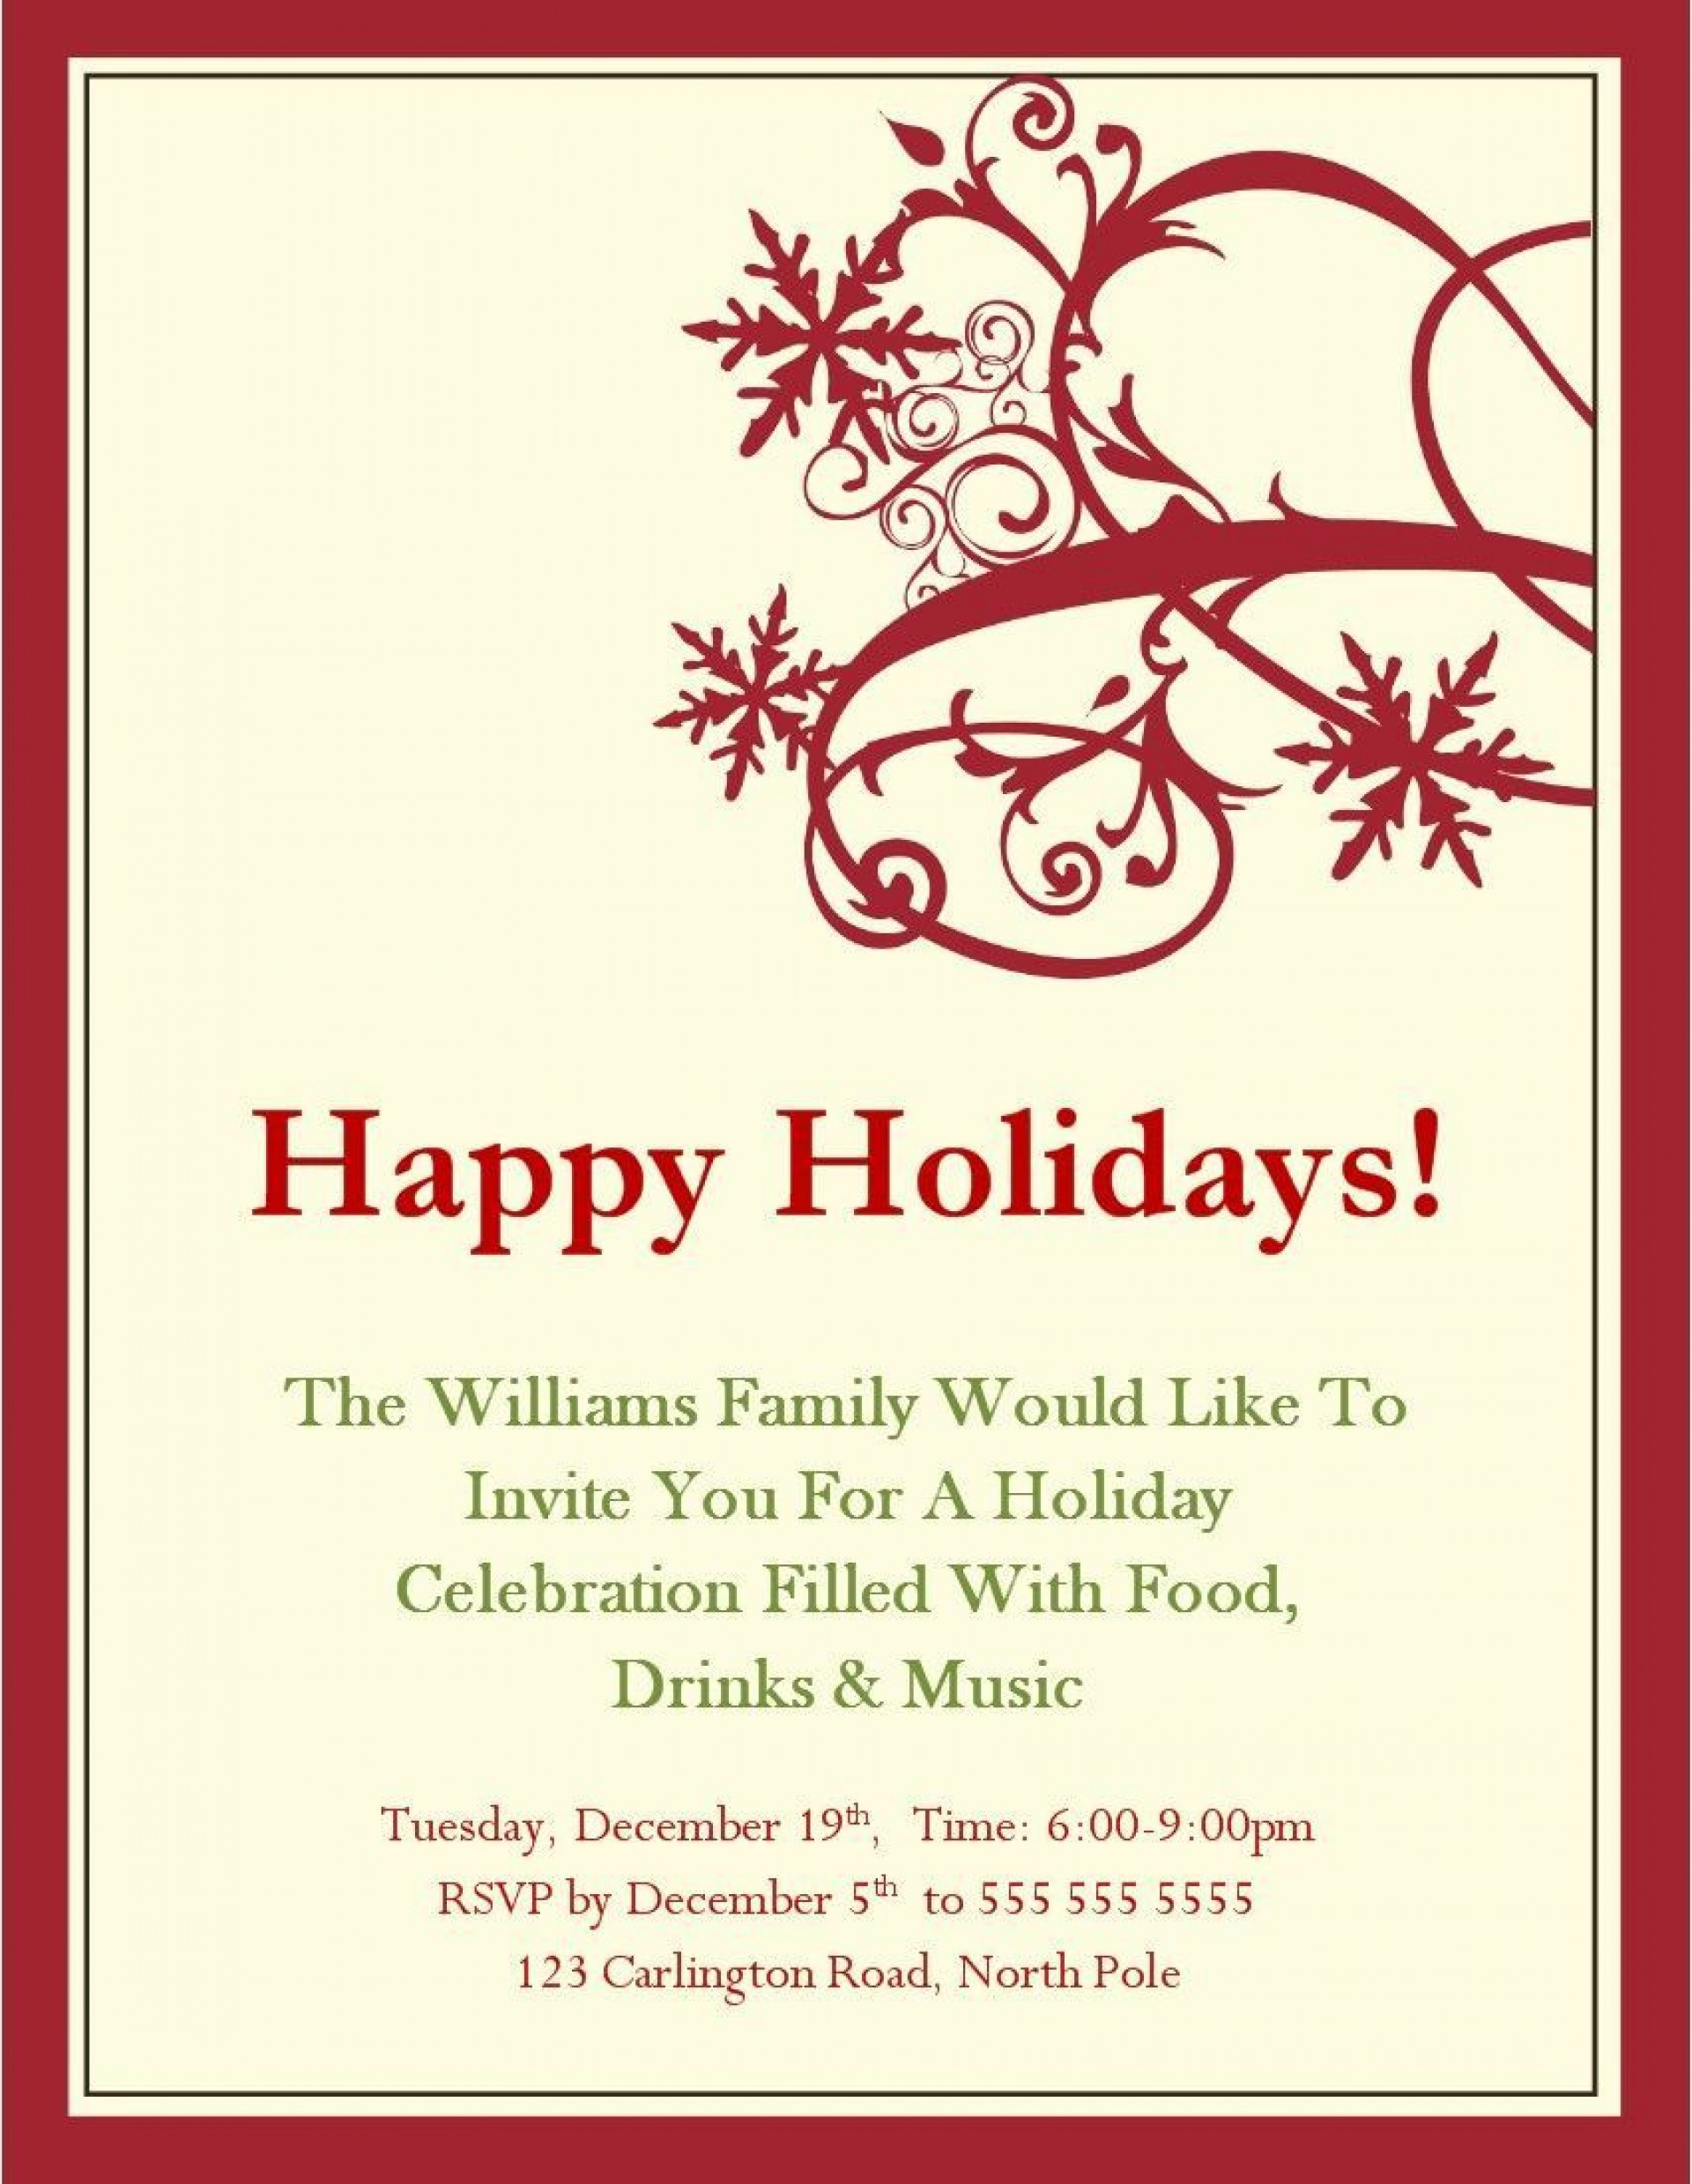 004 Exceptional Xma Party Invite Template Free Sample  Holiday Invitation Word Download Christma1920